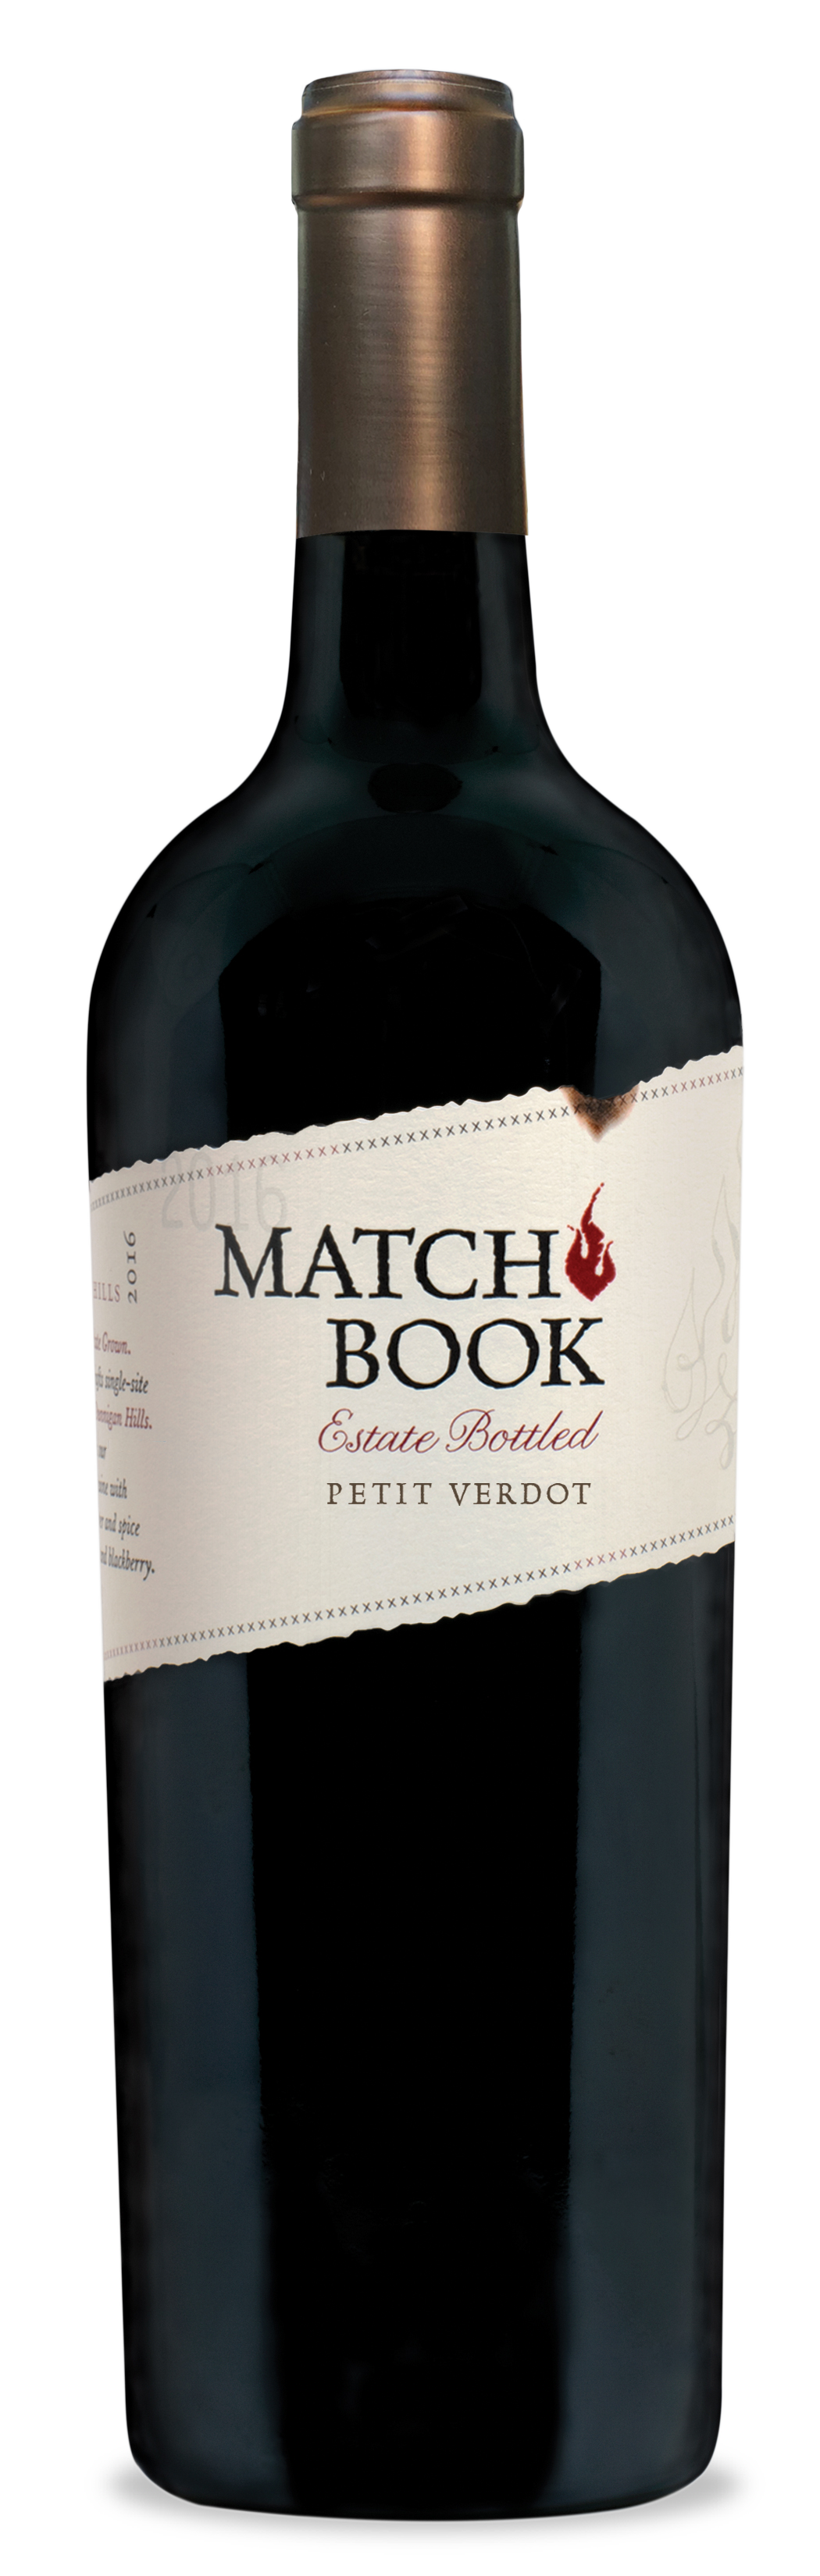 Product Image for 2017 Matchbook Estate Bottled Dunnigan Hills Petit Verdot